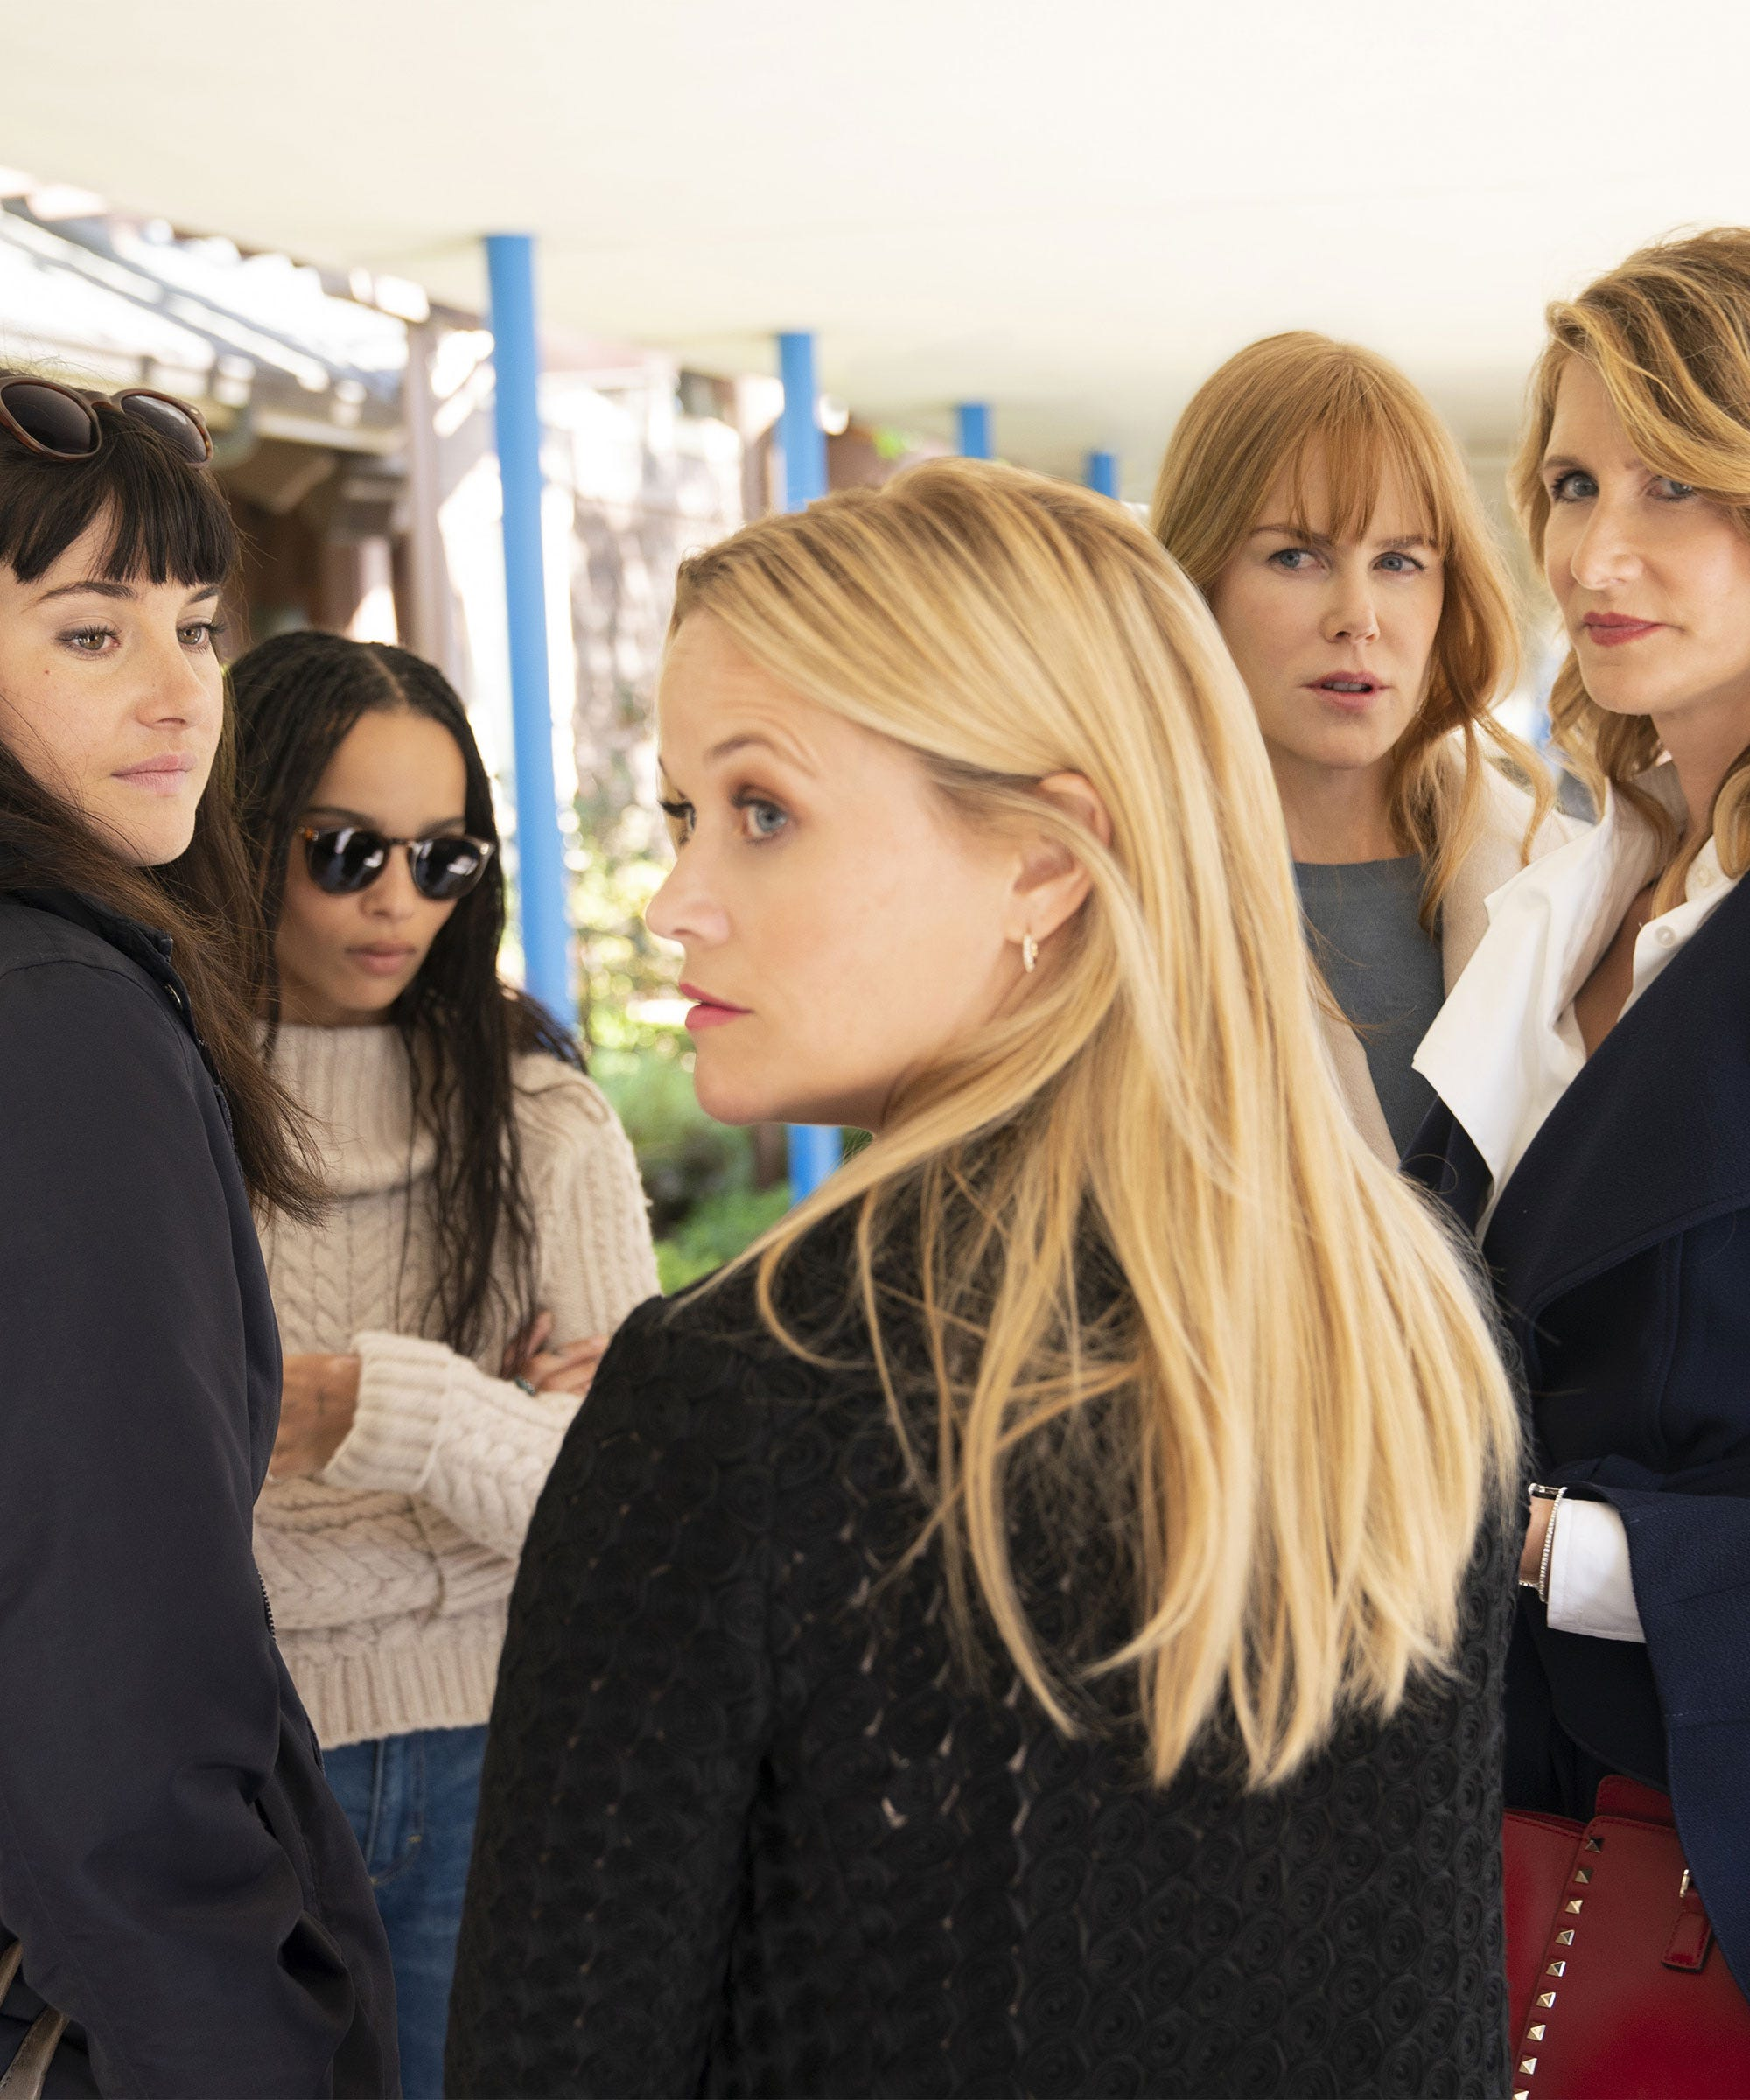 Big Little Lies Season 2 Deals With The Aftermath Of Murder In '70s Disco Glam